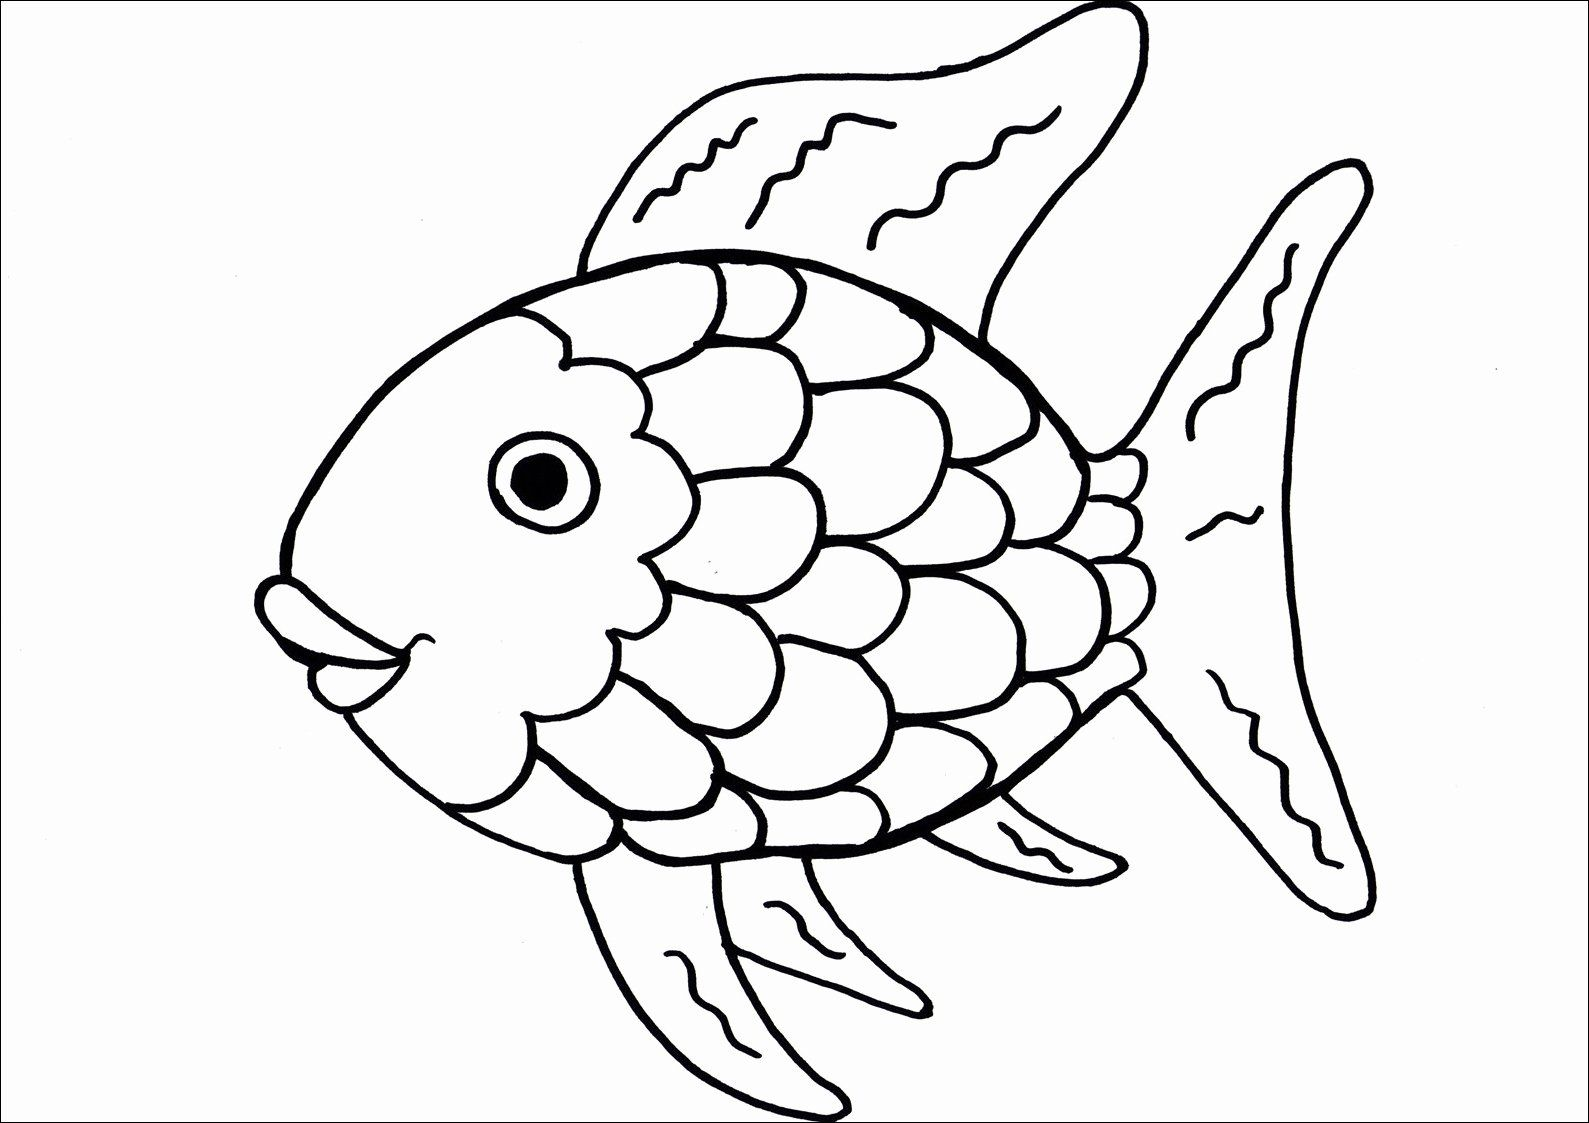 Rainbow Fish Coloring Page Inspirational Rainbow Fish Coloring Template 3 Colors Of In 2020 Rainbow Fish Coloring Page Fish Coloring Page Rainbow Fish Template